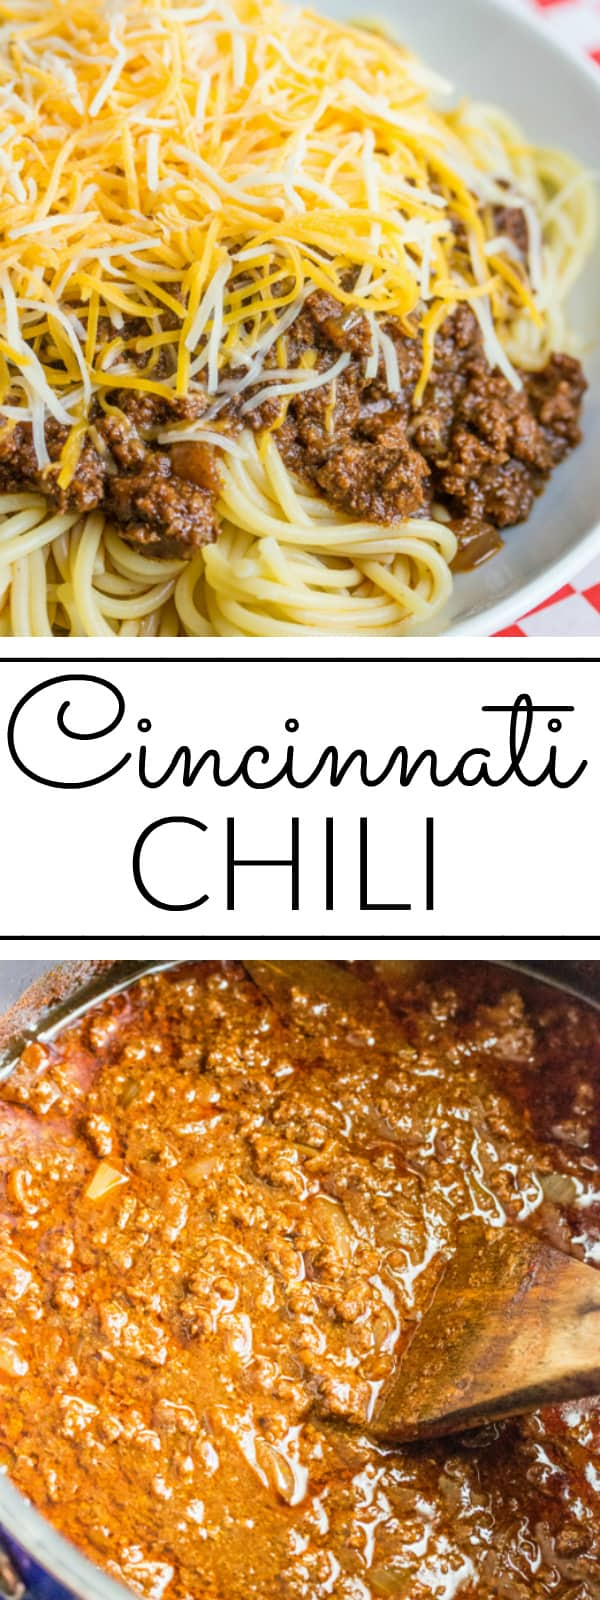 Deliciously hearty, this Cincinnati Chili is a unique chili recipe served over spaghetti and topped with cheese, onions or beans or a combination of the 5! #chili #pasta #skylinechili #cinncinatichili #beef #cheese #spaghetti